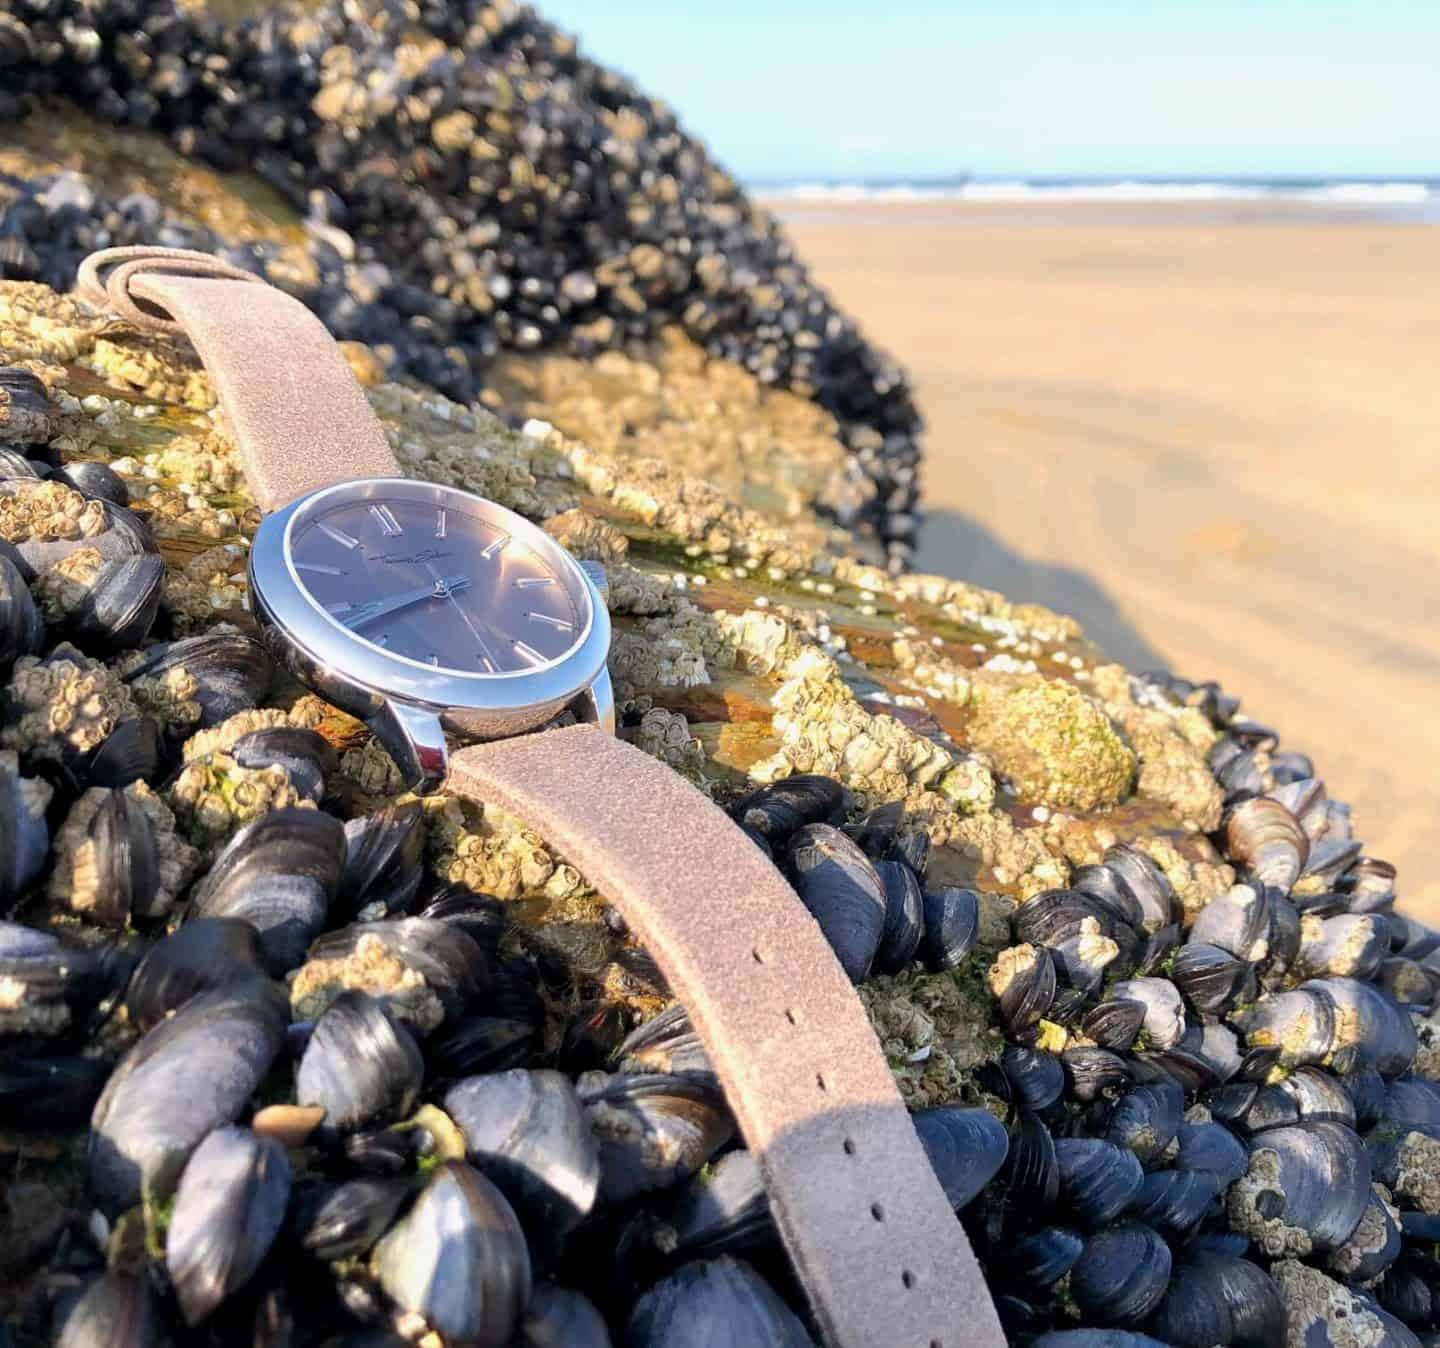 Thomas Sabo - Rebel at Heart Watch at the beach